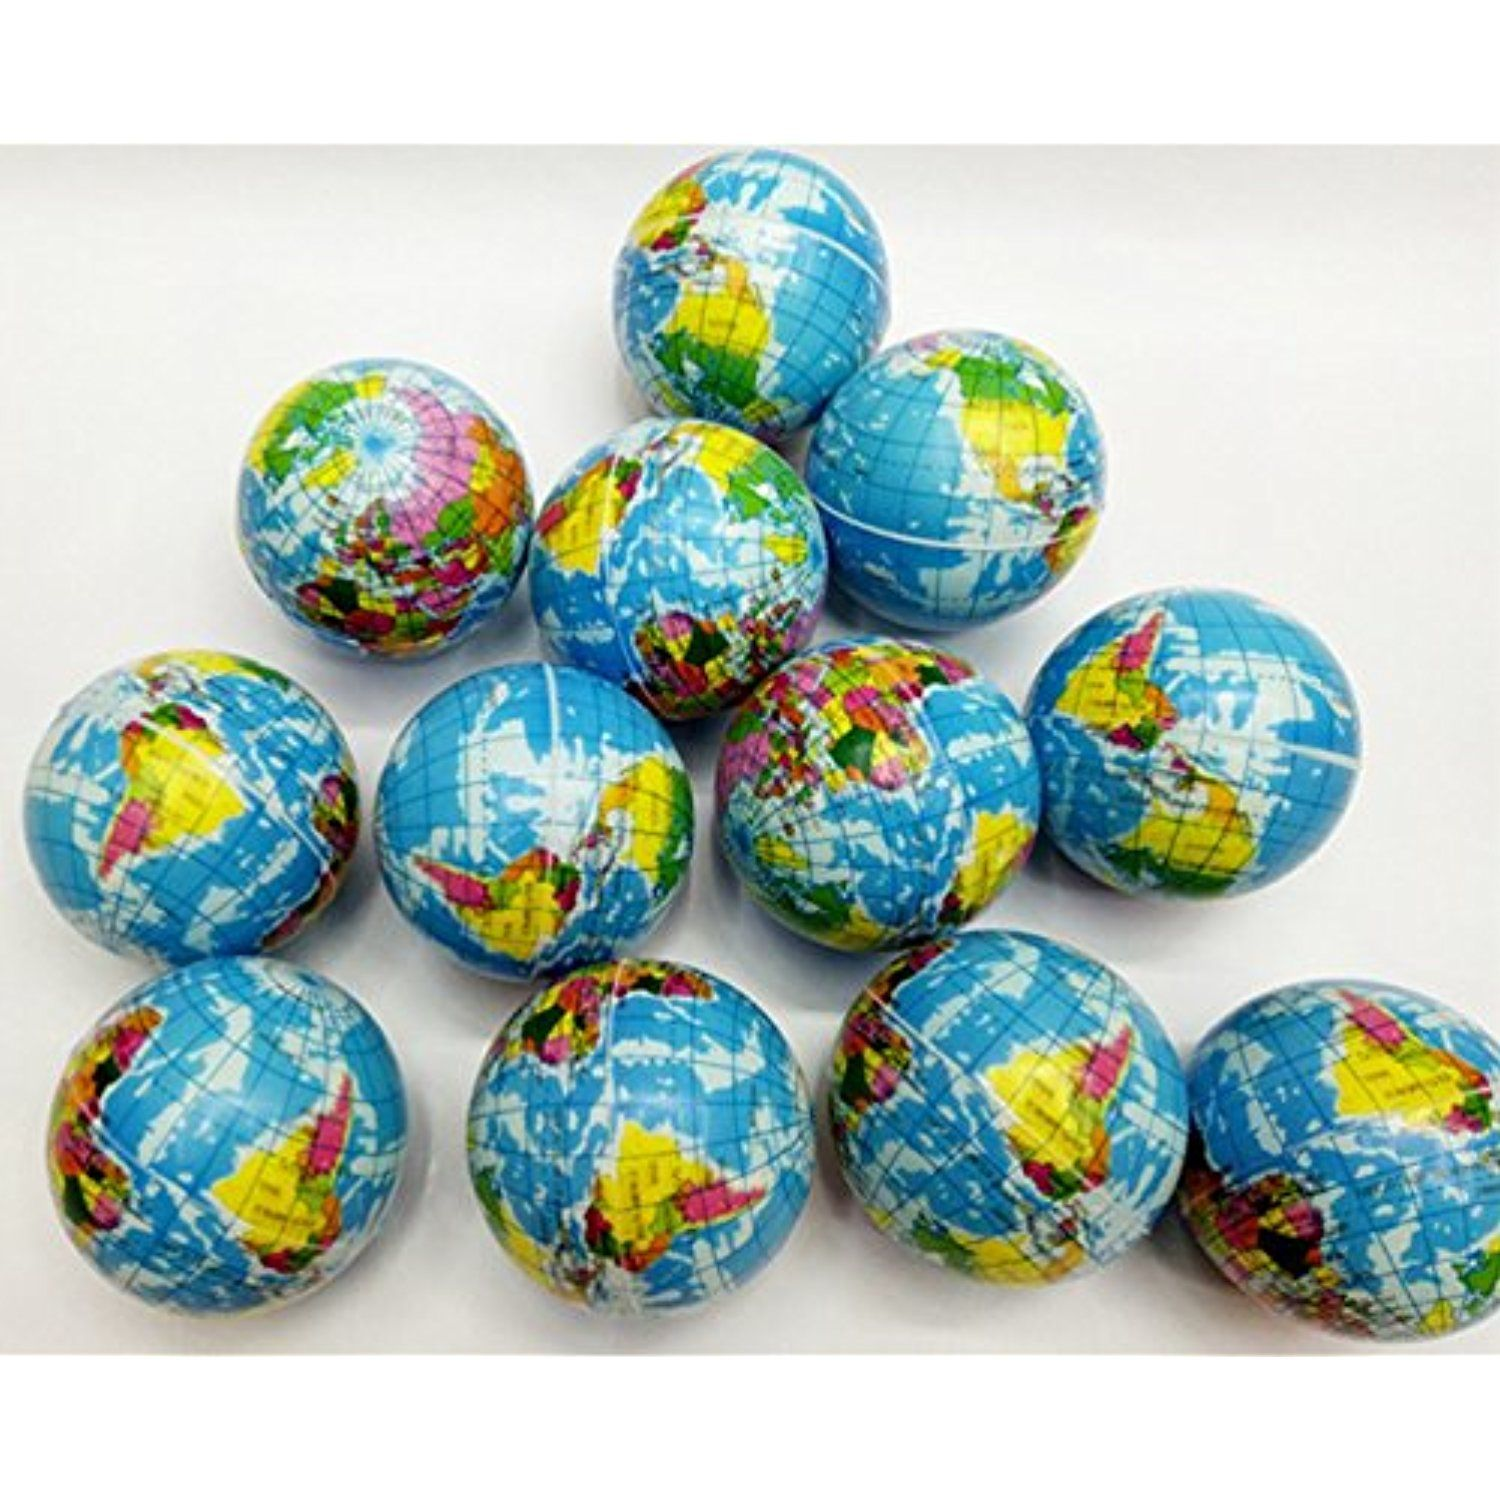 Janext Globe Earth World Map Squeeze Stress Balls